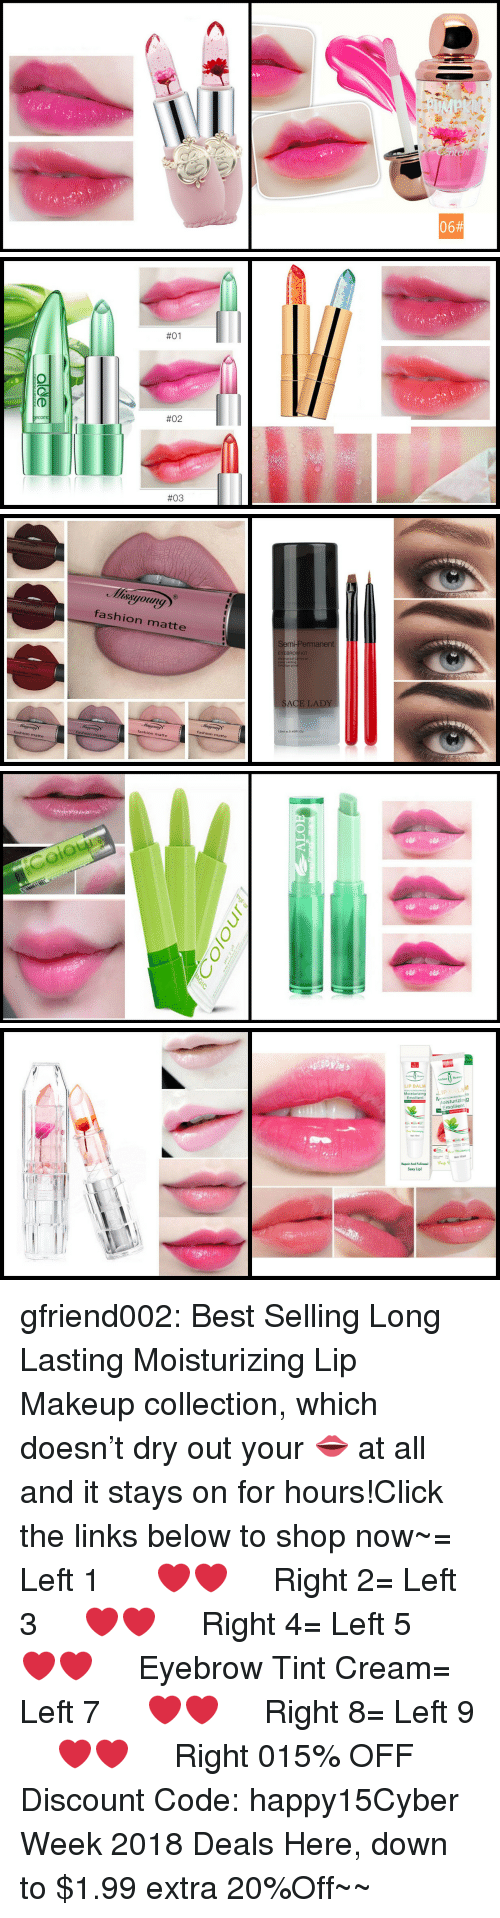 Long Lasting:  #01  #02  #03   fashion matte  Semi-Permanent  BROW KIT  SACE LADY  12mi.о.0 40FL.Oz  fashion matte  fashion matte  fashion matte  fashion matte   Colour   LIP BALM  Emollient  Moisturizingg  Emollient  Net 10m  Rapair And Fullnessl  Sexy Lipl gfriend002:  Best Selling Long Lasting Moisturizing Lip Makeup collection, which doesn't dry out your 👄 at all and it stays on for hours!Click the links below to shop now~= Left 1   ❤❤   Right 2= Left 3   ❤❤   Right 4= Left 5   ❤❤   Eyebrow Tint Cream= Left 7   ❤❤   Right 8= Left 9   ❤❤   Right 015% OFF Discount Code: happy15☞Cyber Week 2018 Deals Here, down to $1.99  extra 20%Off~~